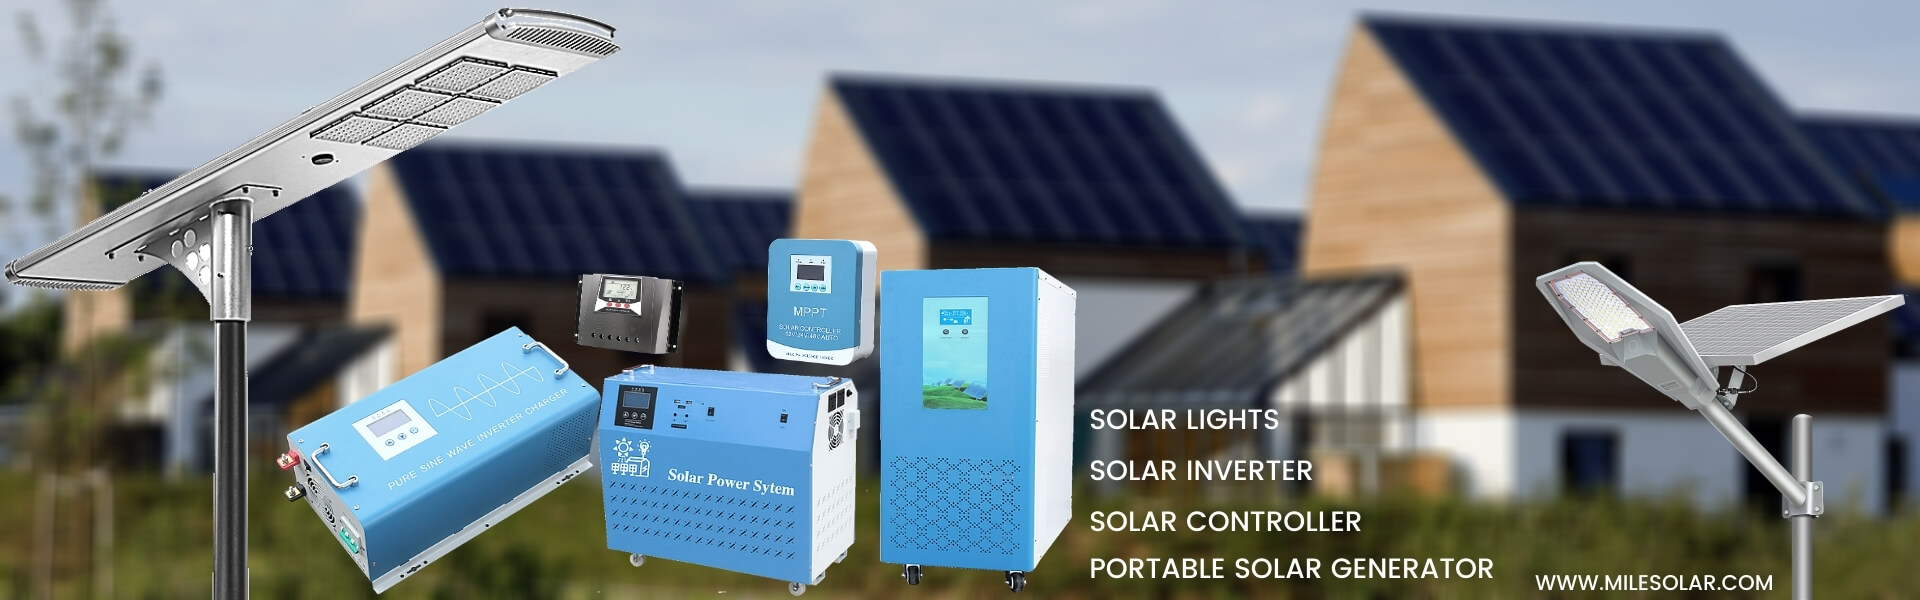 Power inverter, MPPT controller, off-grid solar system, MILESOLAR